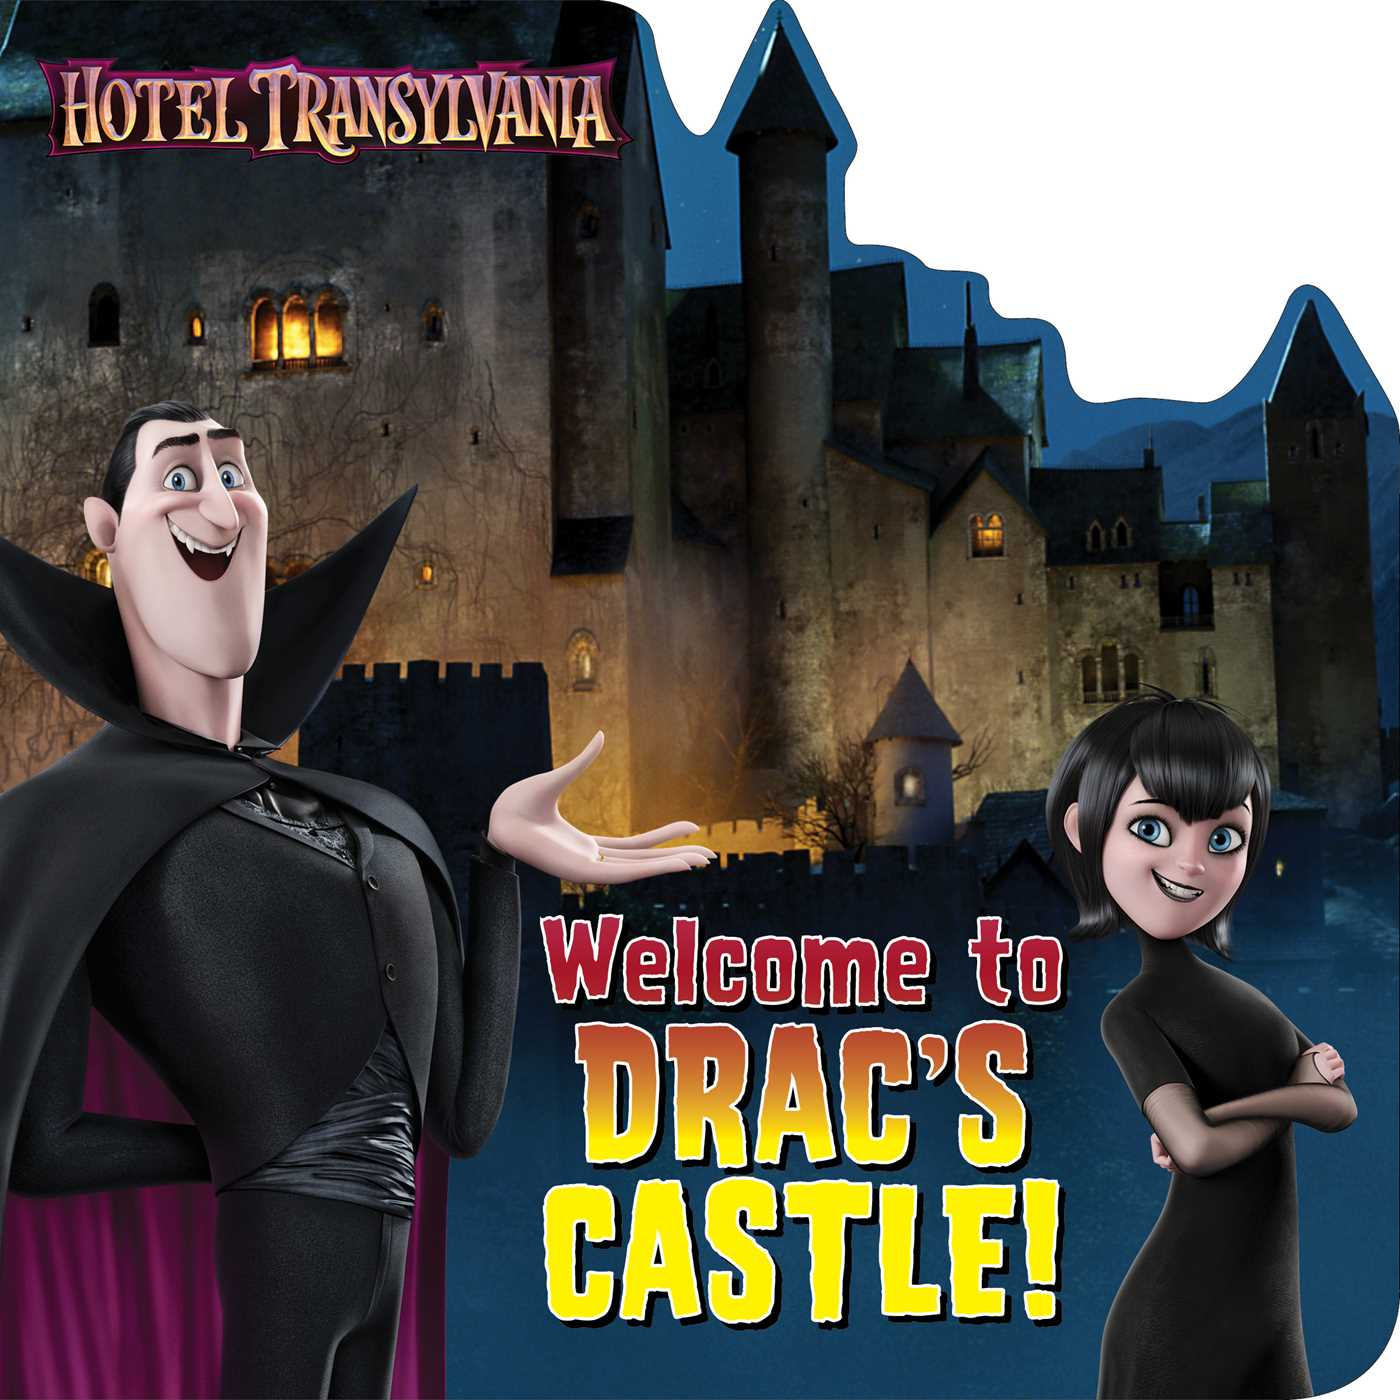 Welcome to dracs castle 9781534417526 hr